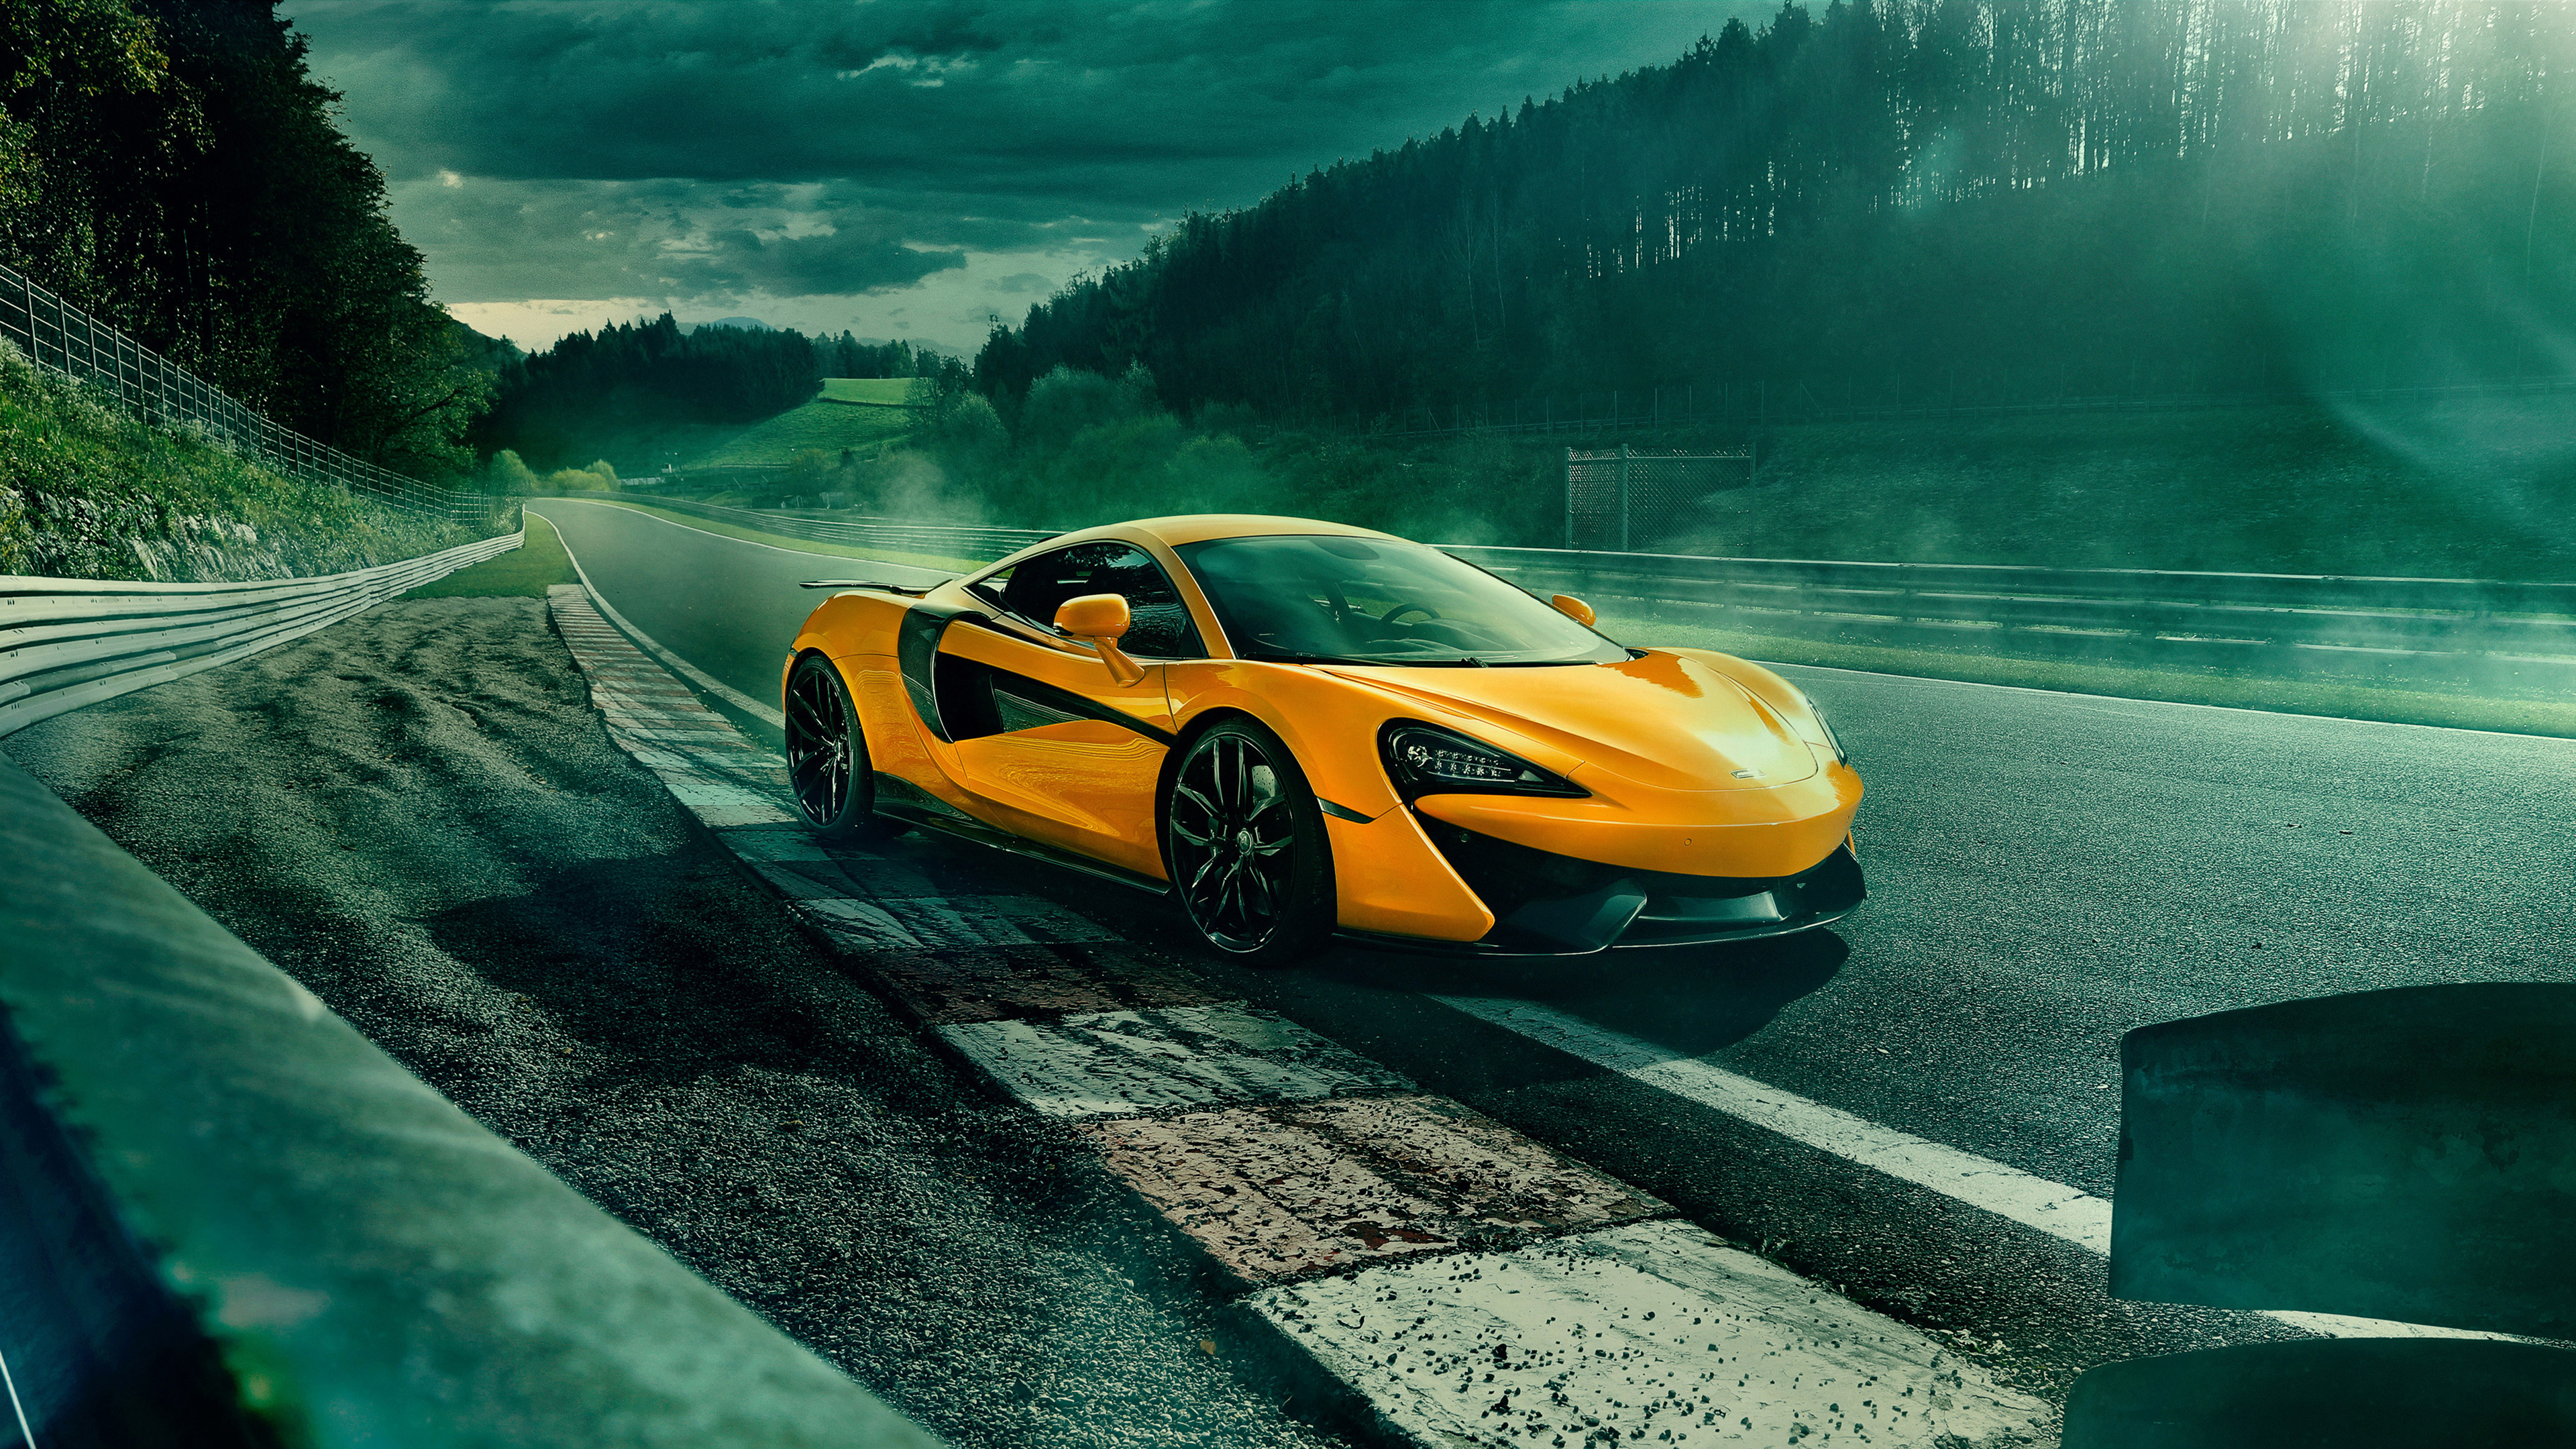 3840x2160 - McLaren Wallpapers 17